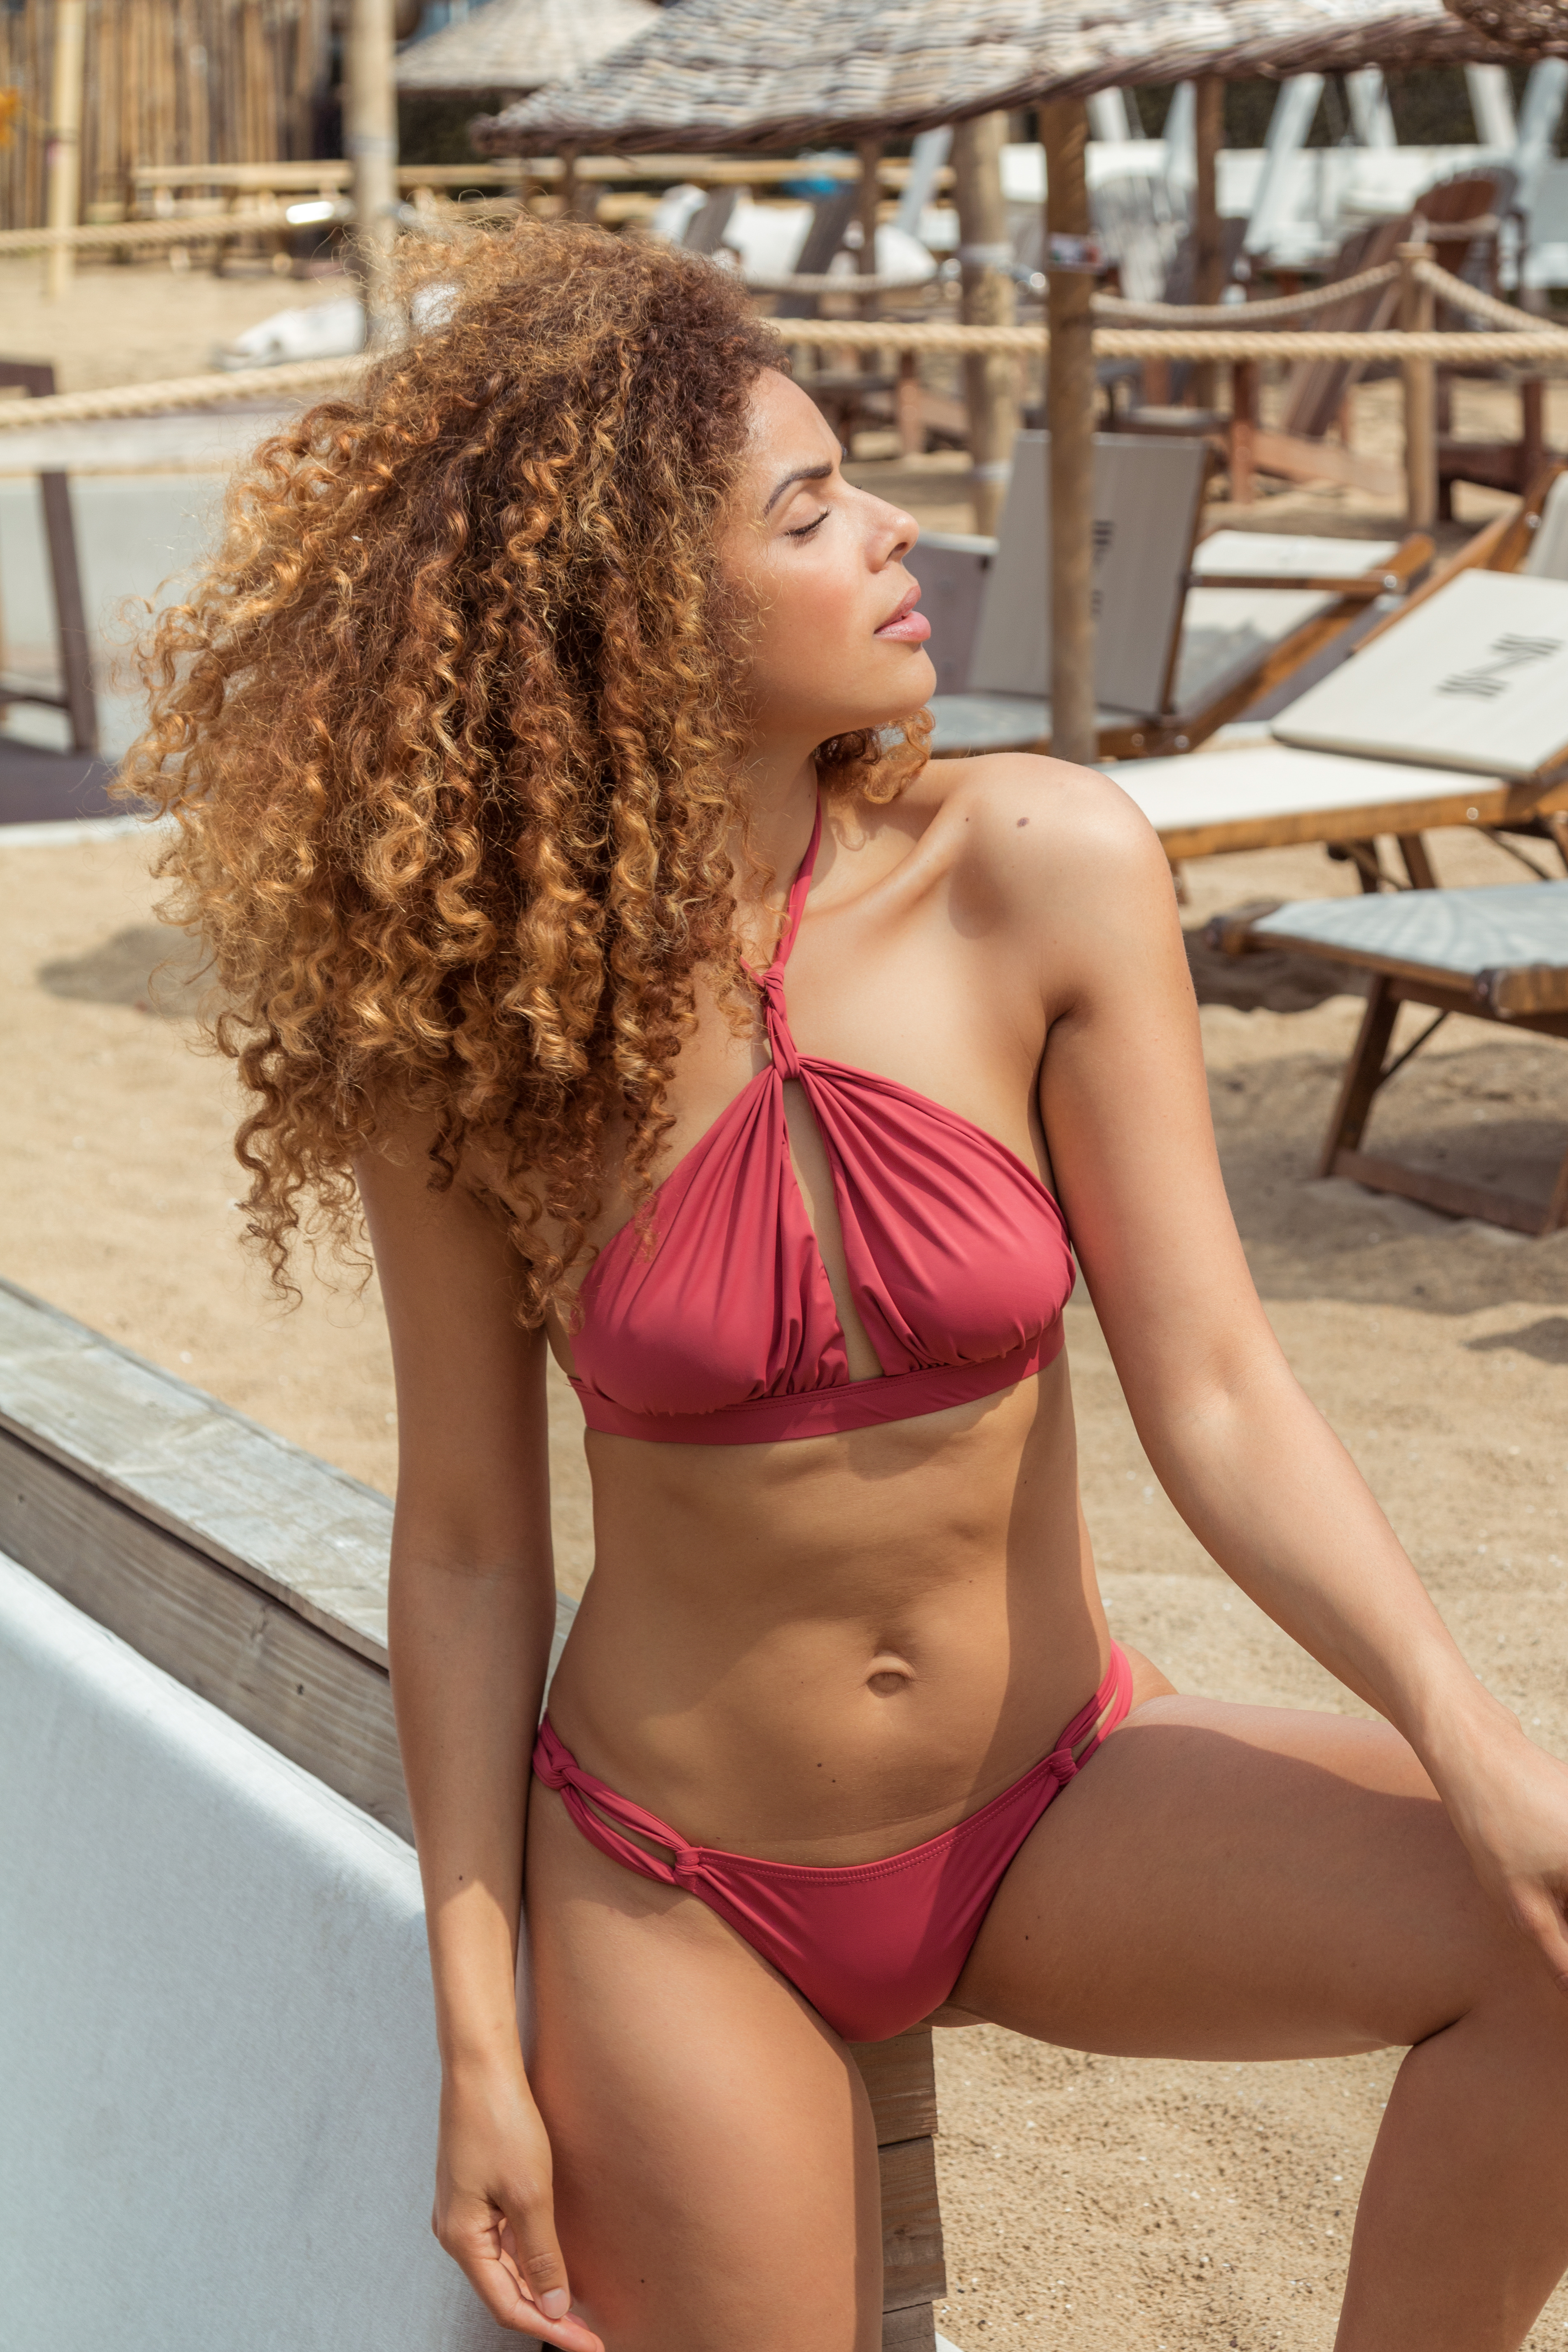 8740bde140 Brand of the month: Sauipe Swimwear from Brazil